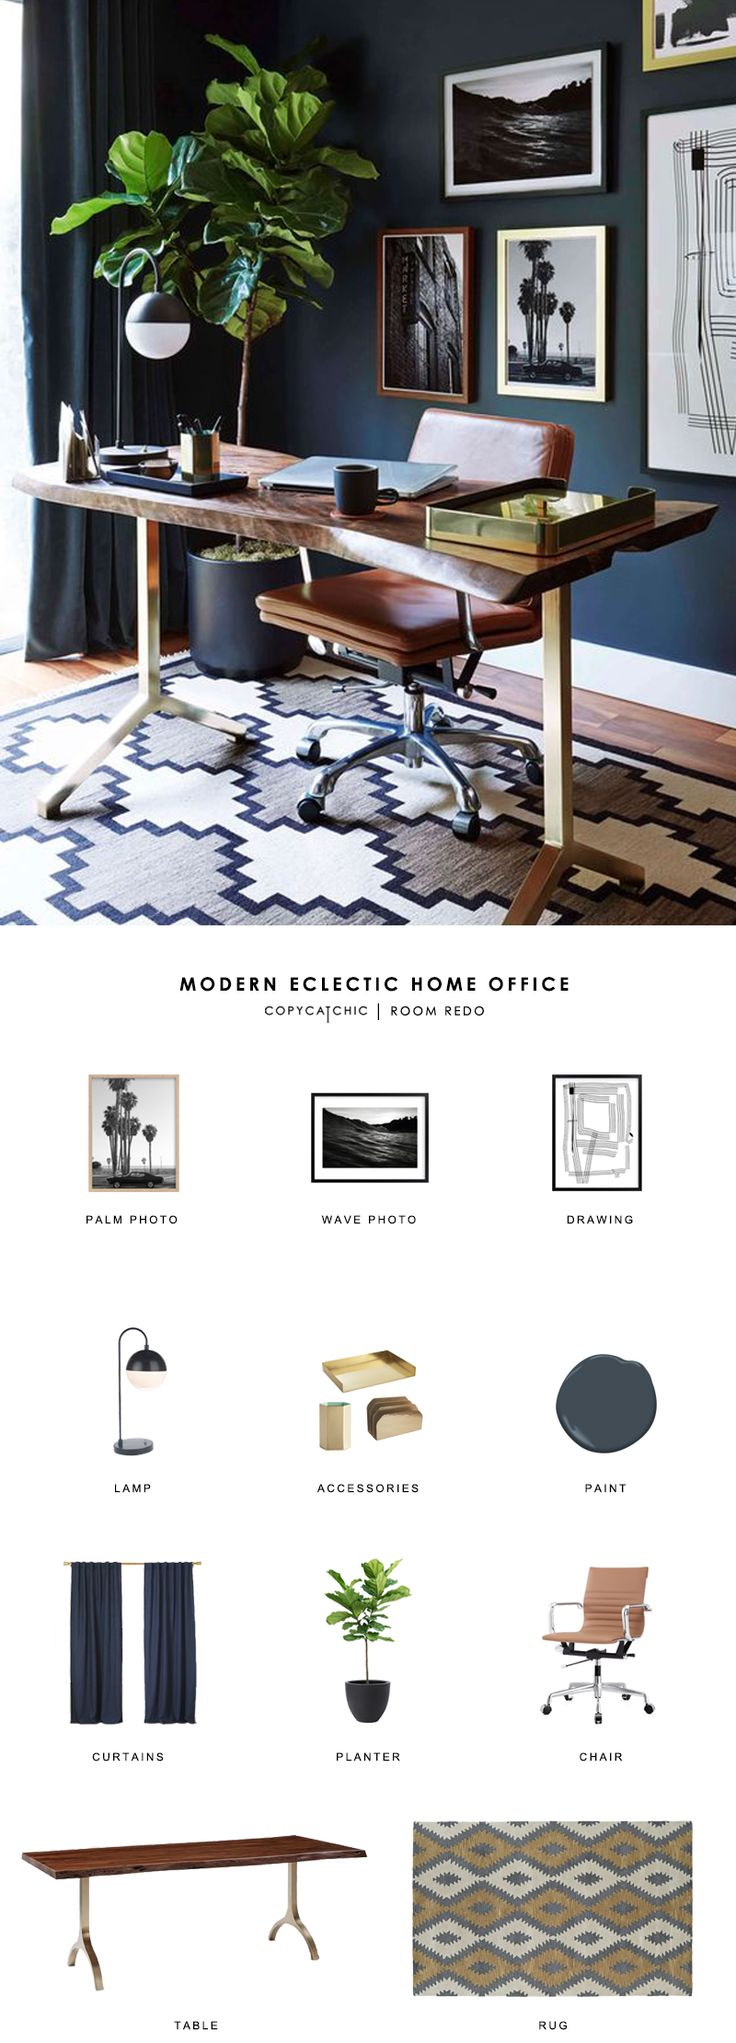 Copy Cat Chic Room Redo | Modern Eclectic Home Office | Copy Cat Chic | Bloglovin'